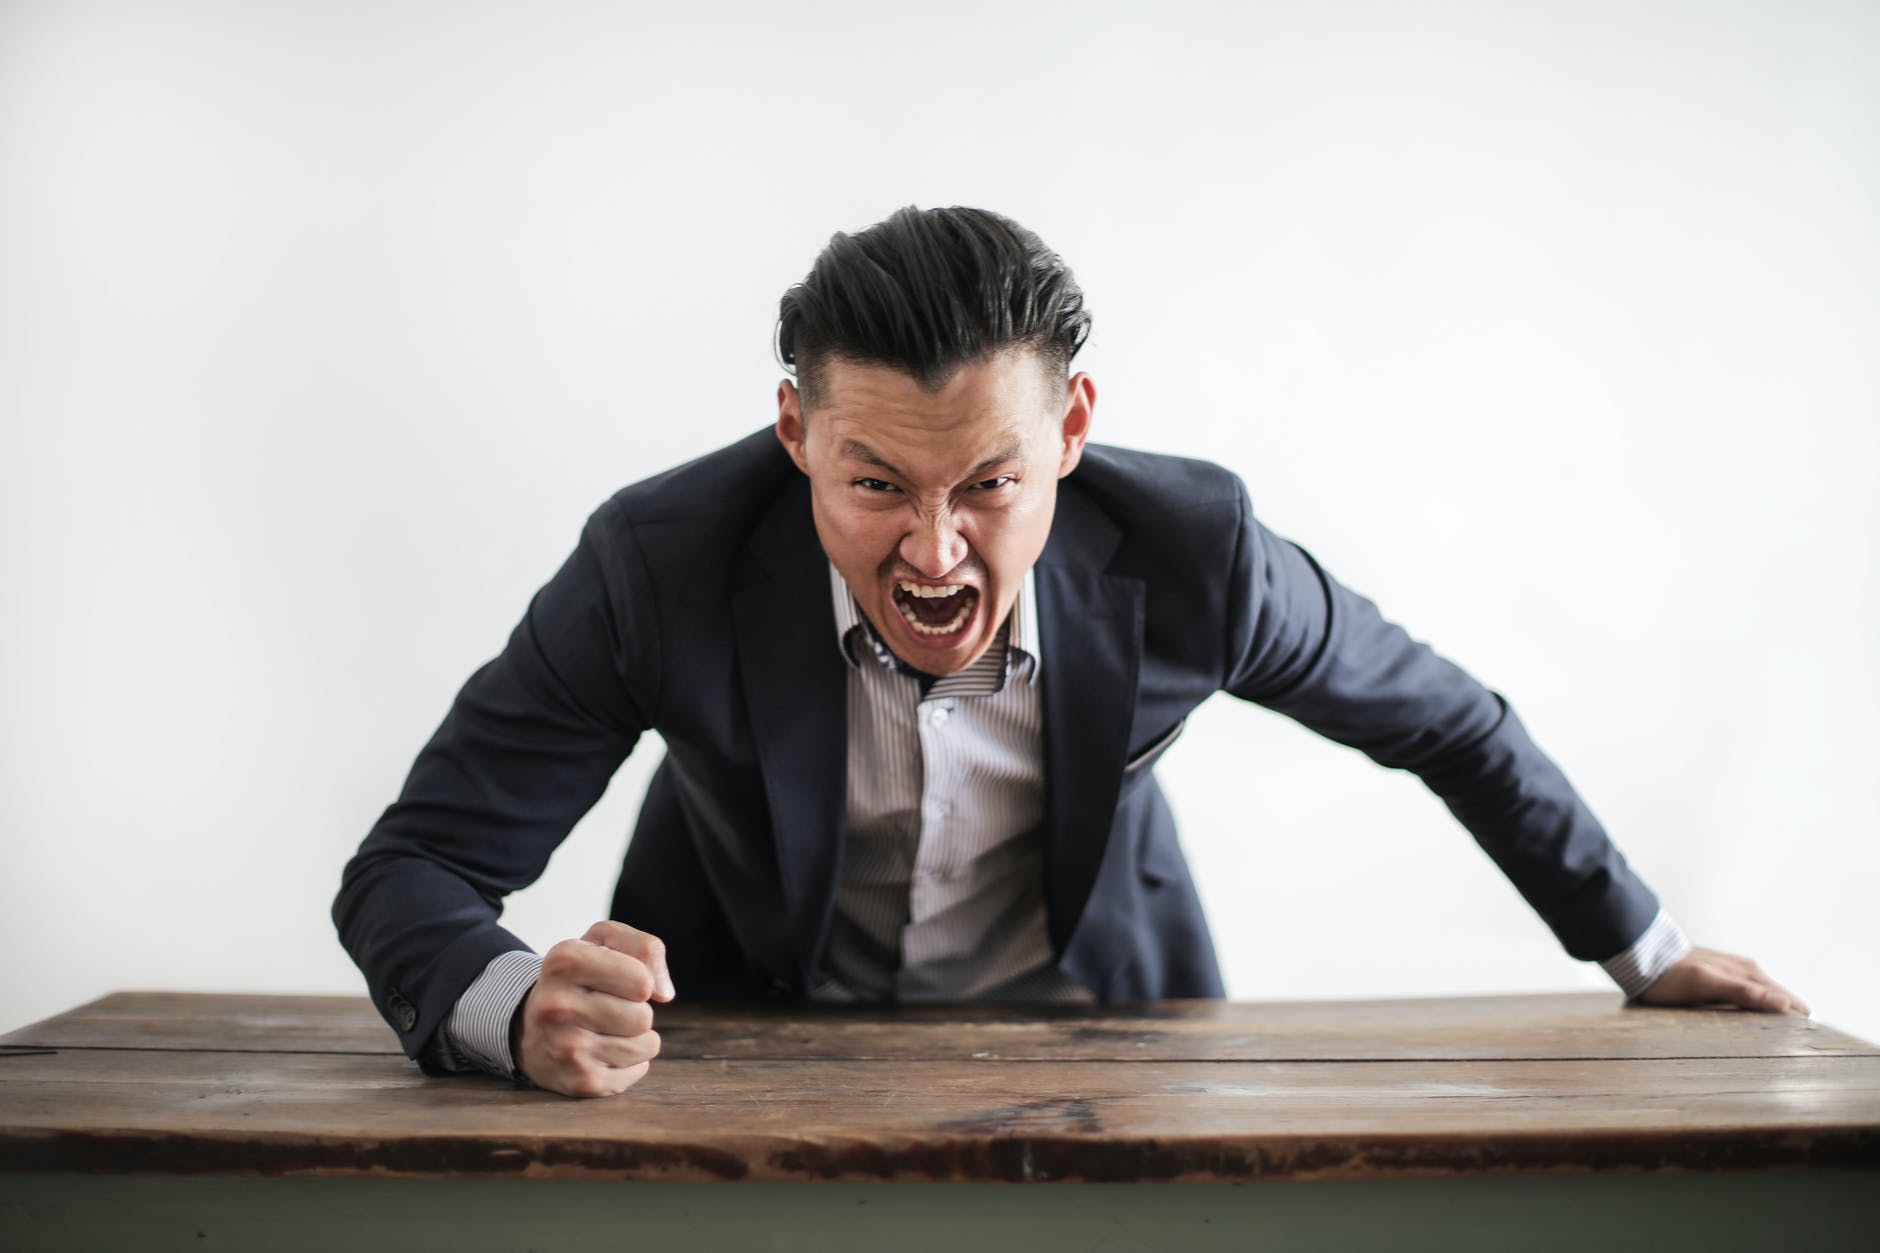 image of man yelling with his fist on a desk, probably pounding on it to annunciate his words.